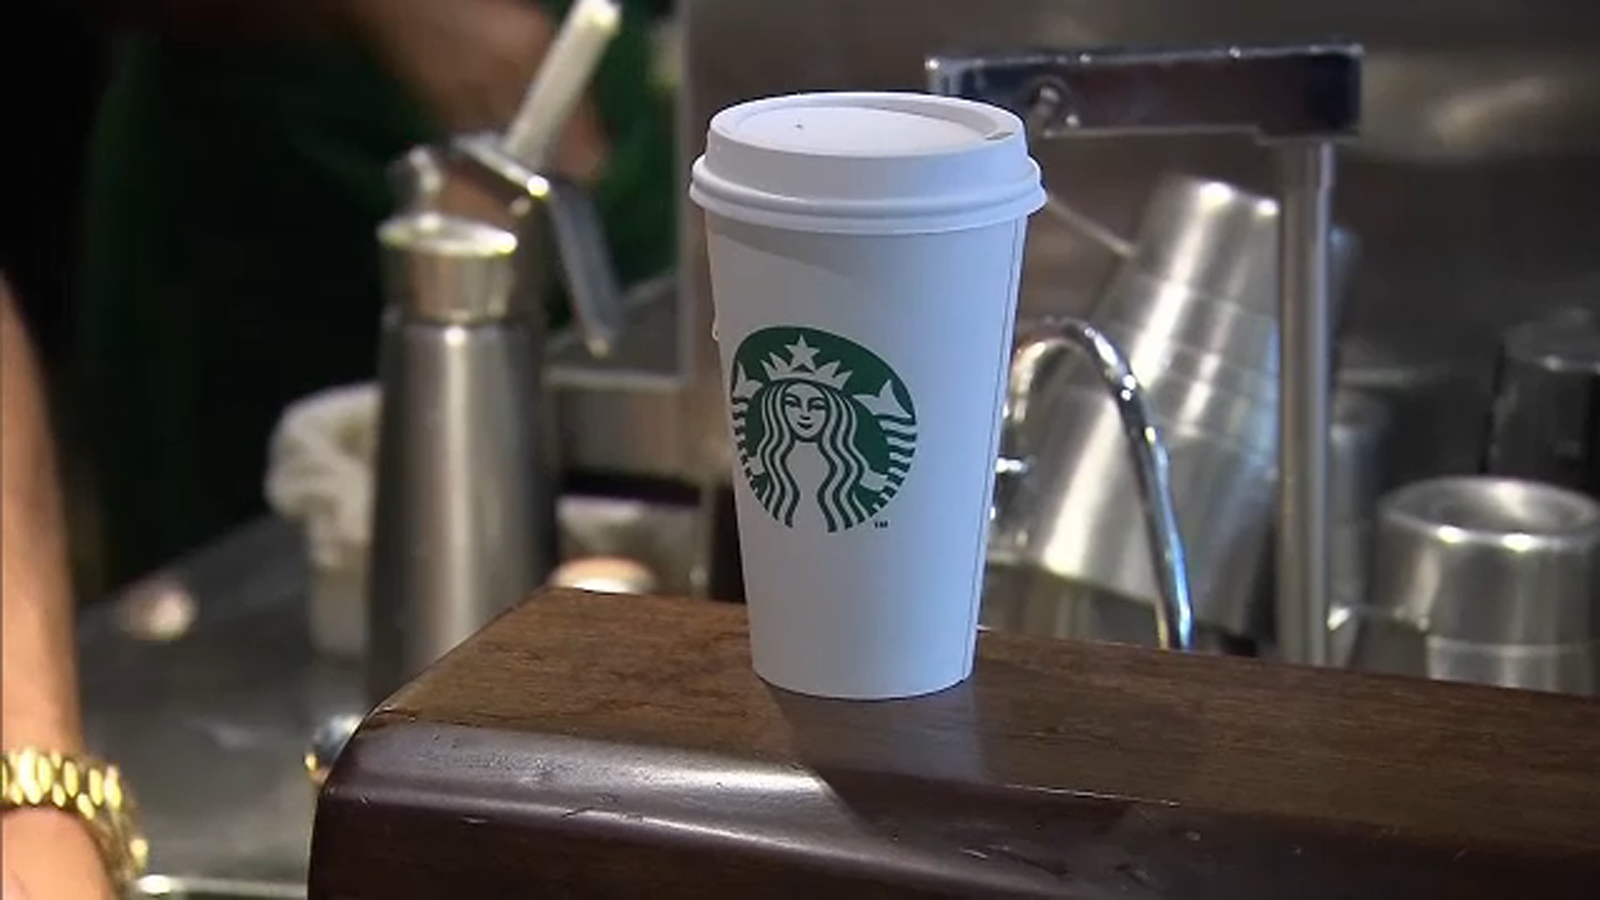 Starbucks Offers Free Coffee In 2-for-1 Deal In App Thursday Afternoon photo